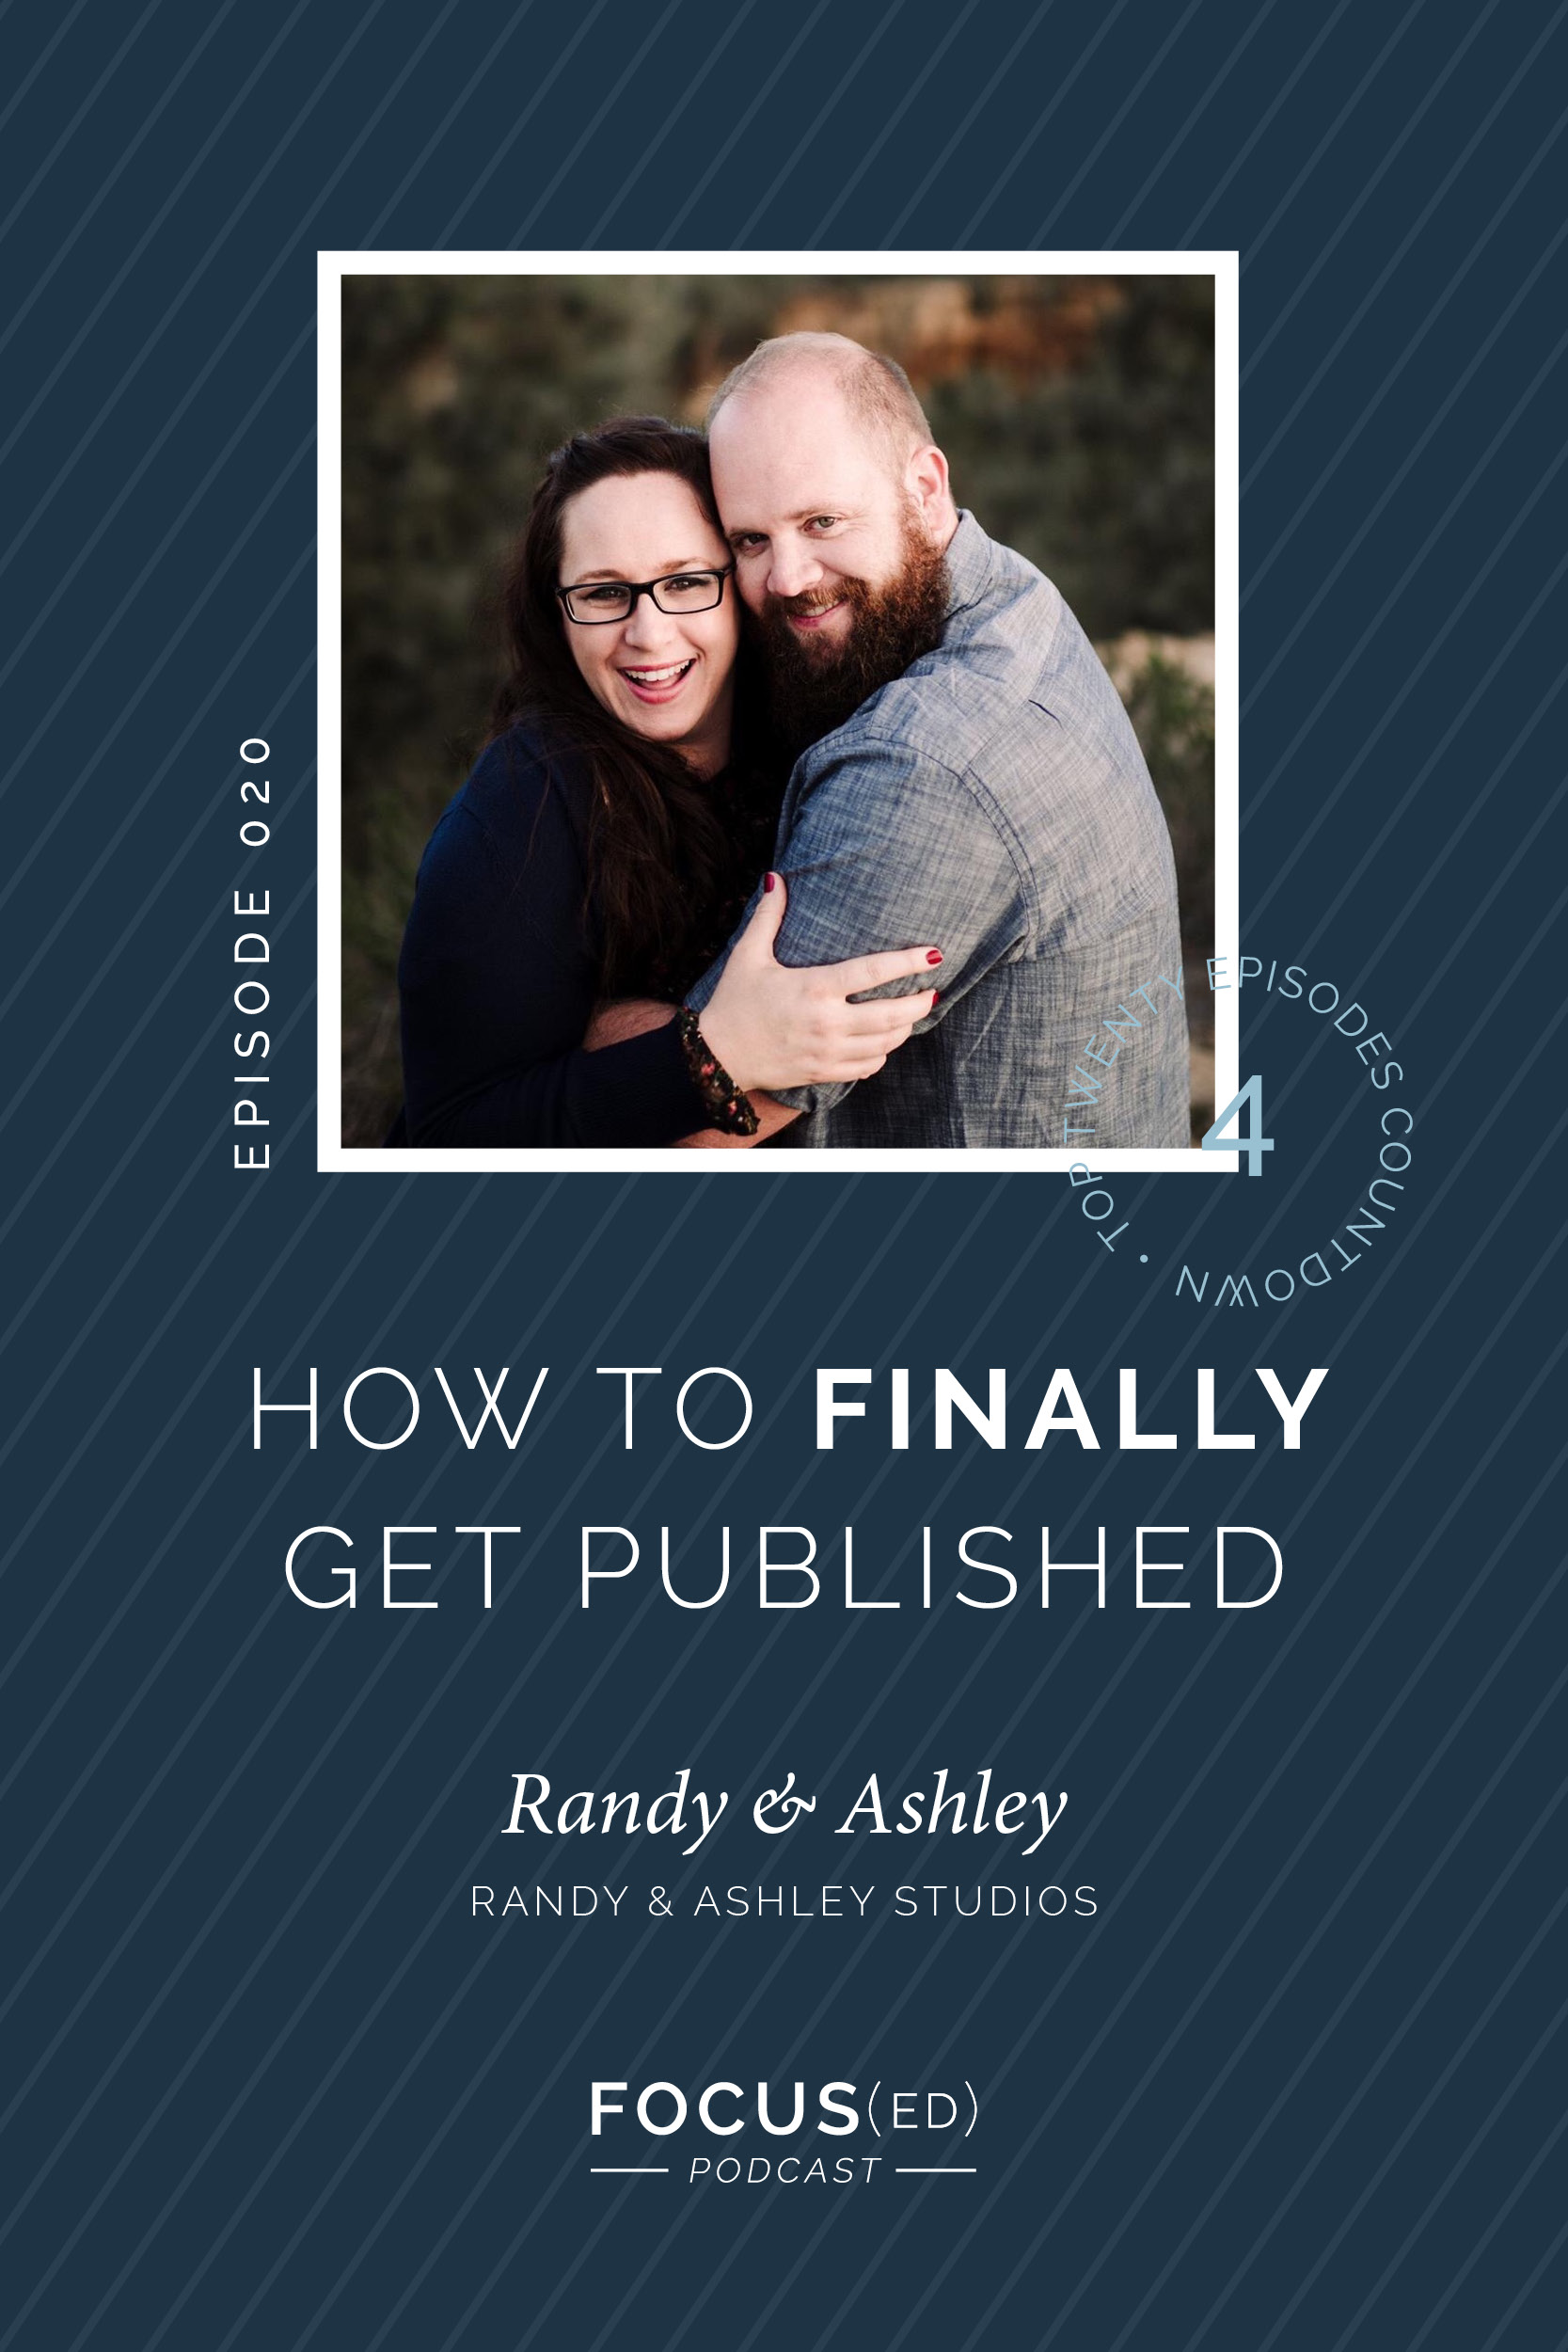 How to finally get published as a photographer